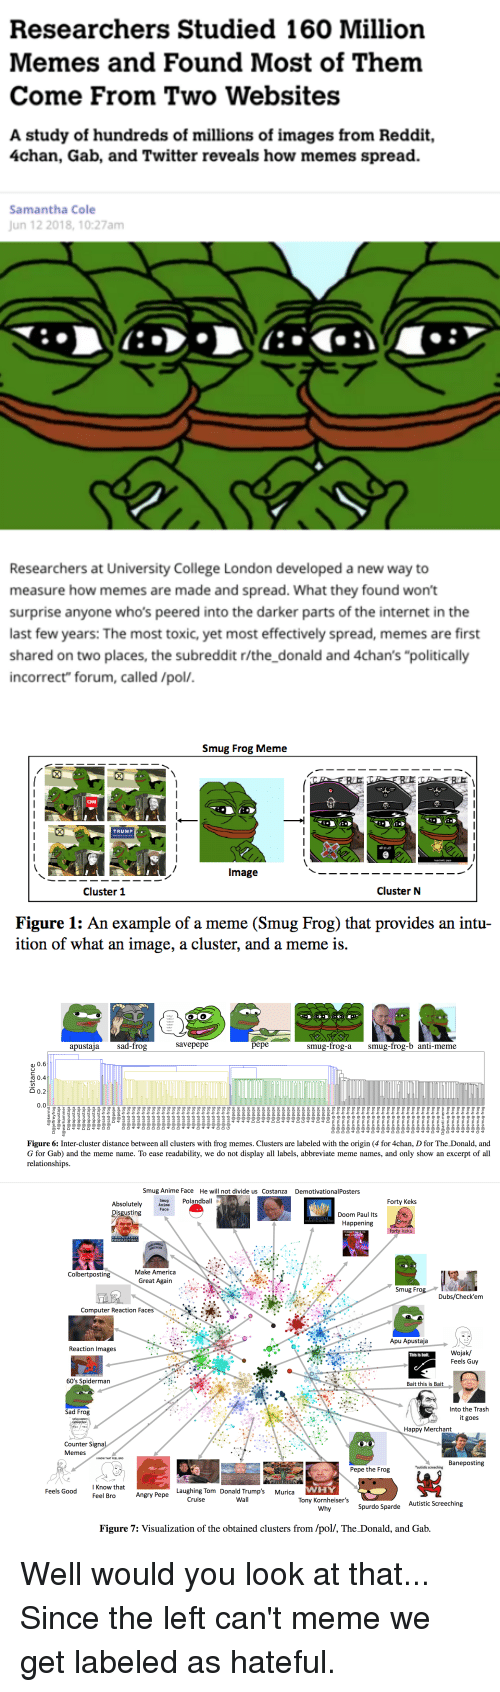 """Donald Trumps: Researchers Studied 160 Milliorn  Memes and Found Most of Them  Come From Two Websites  A study of hundreds of millions of images from Reddit,  4chan, Gab, and Twitter reveals how memes spread.  Samantha Cole  Jun 12 2018,10:27am  产ブ  Researchers at University College London developed a new way to  measure how memes are made and spread. What they found won't  surprise anyone who's peered into the darker parts of the internet in the  last few years: The most toxic, yet most effectively spread, memes are first  shared on two places, the subreddit r/the_donald and 4chan's """"politically  incorrect"""" forum, called /pol/   Smug Frog Meme  Image  Cluster 1  Cluster N  Figure 1: An example of a meme (Smug Frog) that provides an intu-  ition of what an image, a cluster, and a meme is.   When?  Where?  What?  Who?  How  apustaja sad-frog  savepepe  pepe  smug-frog-asmug-frog-b anti-meme  0.6  o 0.4  0.2  0.0  Figure 6: Inter-cluster distance between all clusters with frog memes. Clusters are labeled with the origin (4 for 4chan, D for The Donald, and  G for Gab) and the meme name. To ease readability, we do not display all labels, abbreviate meme names, and only show an excerpt of all  relationships.   Smug Anime Face  He will not divide us Costanza  DemotivationalPosters  Smug Polandball  Anime  Forty Keks  Absolutely  Disgusting  Face  Doom Paul Its  Happening  POTENTIAI  forty keks  IT DIDN'T MAVE TO  END LIKE  ABSOLUTELY  DISGUSTIN  REAT AGAIN  Make America  Colbertposting  Great Again .  Smug Frog  Dubs/Check'em  Computer Reaction Faces  Apu Apustaja  Reaction Images  Wojak/  Feels Guy  This is bait.  60's Spiderman  Bait this is Bait  Into the Trash  it goes  Sad Frog  smug eastern  Happy Merchant  Counter Signa  Memes  IKNOW THAT FEEL BRO  Baneposting  autistic screeching  Pepe the Frog  I Know that  Feel Bro  WHY  Tony Kornheiser's  Why  Feels Good  Laughing Tom Donald Trump's Murica  Angry Pepe  Cruise  Well  Autistic Screeching  Spurdo Sparde  Figure 7:"""